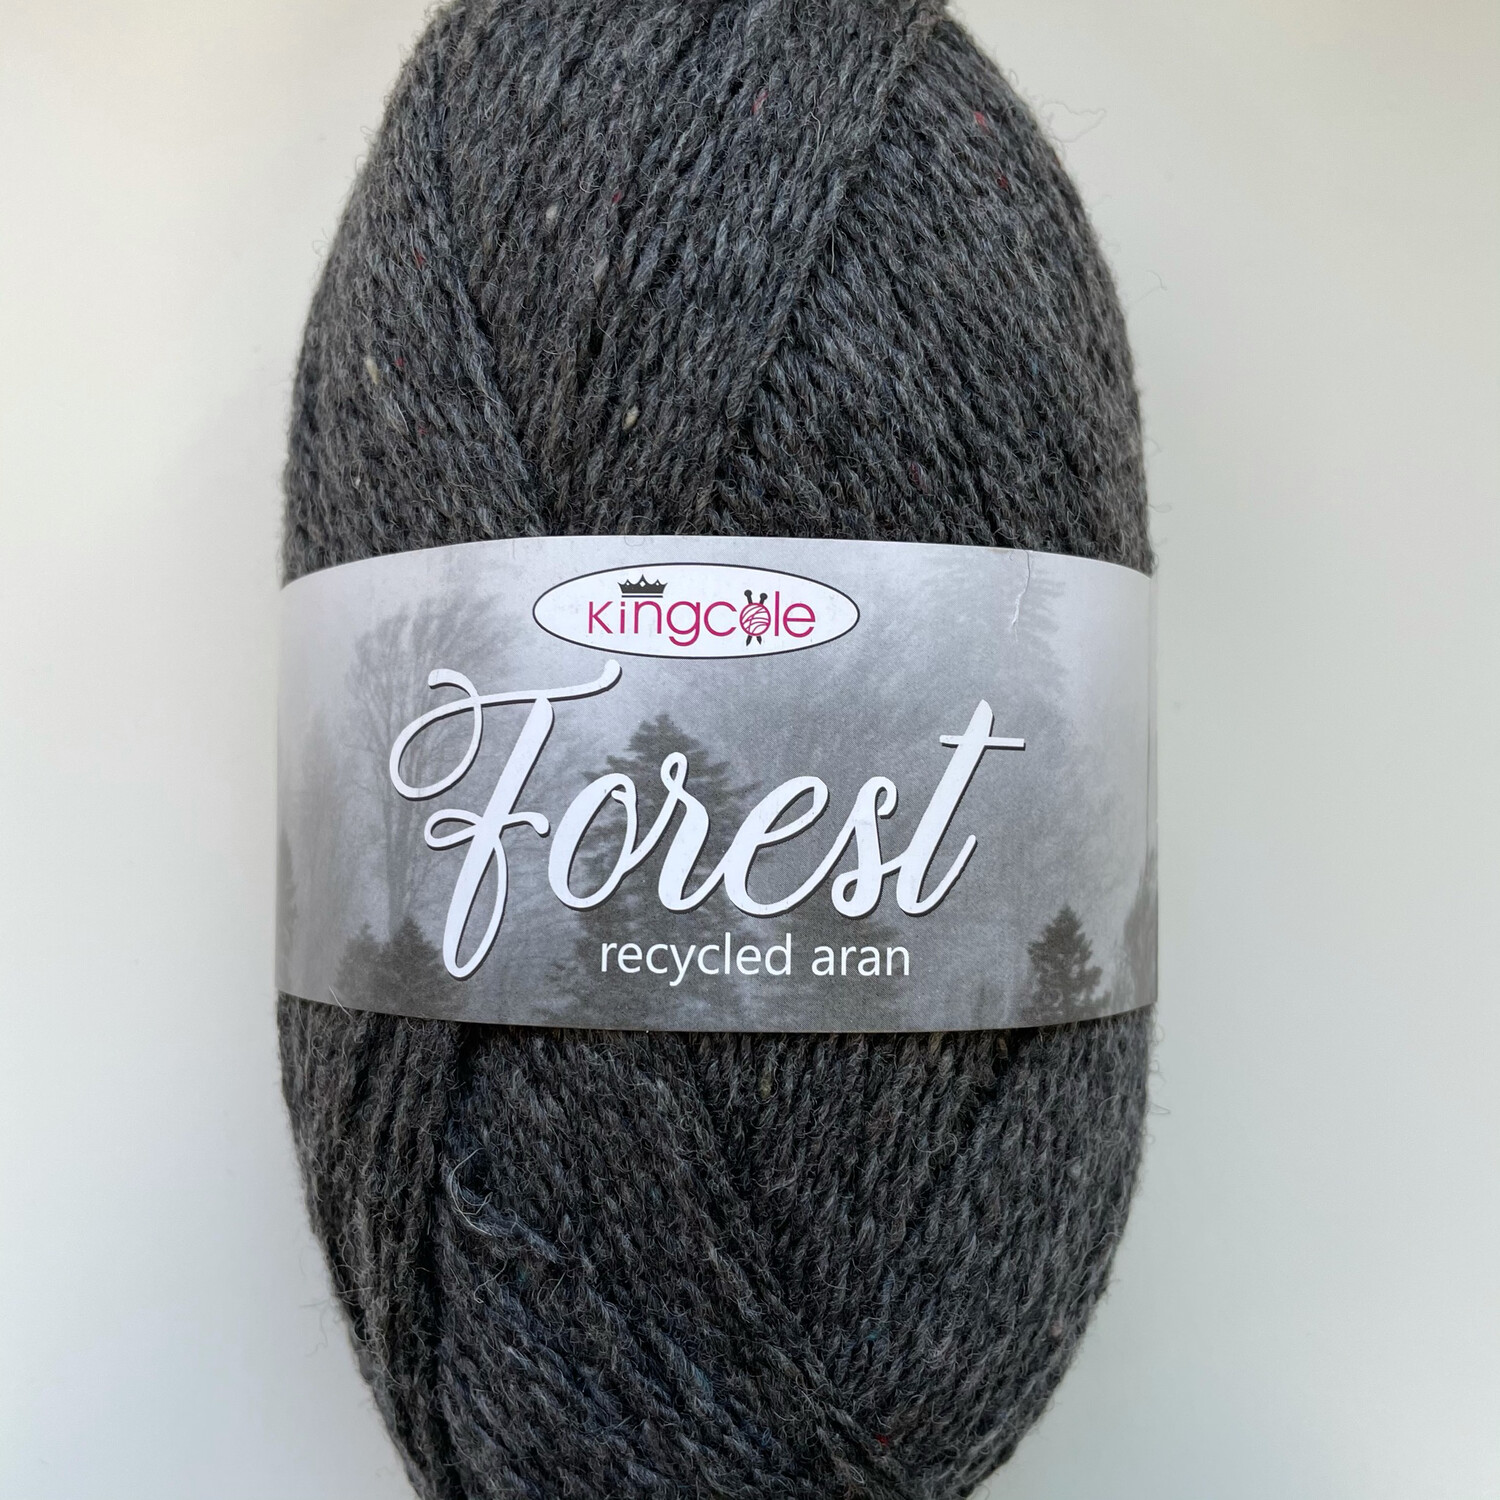 King Cole Forest Aran 100% Recycled Yarn containing 35% Wool - Gisburn Forest